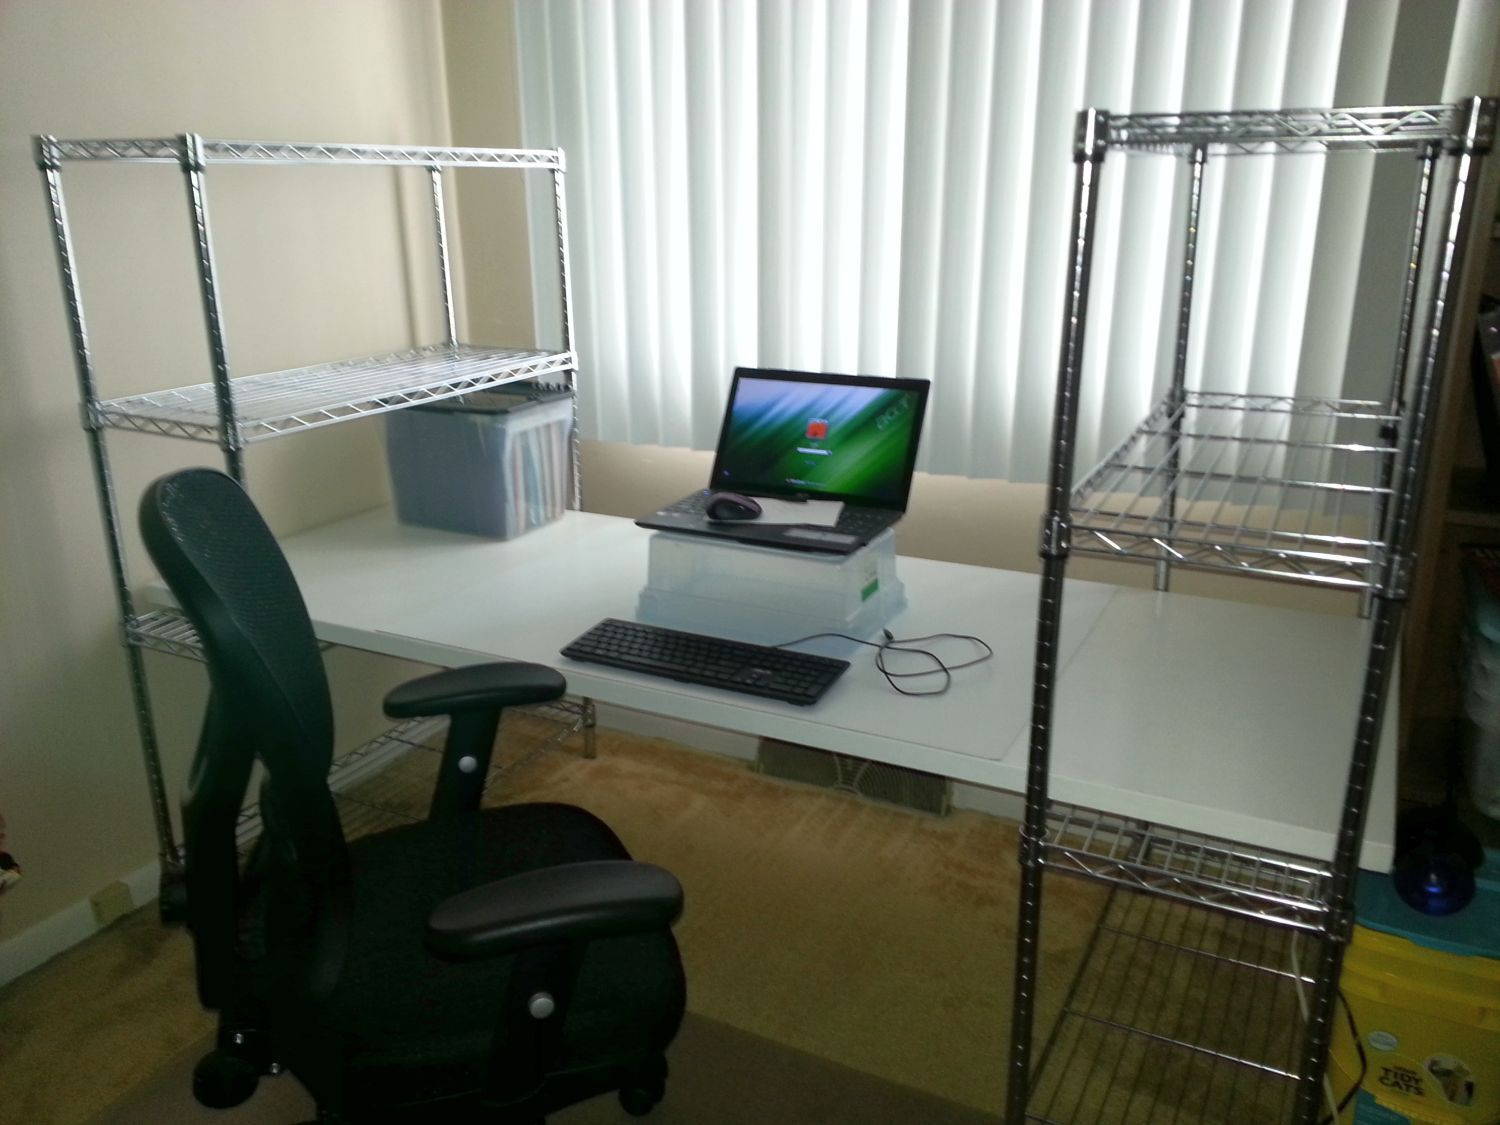 Home office desk  Easy assembly - no bolts, drilling or